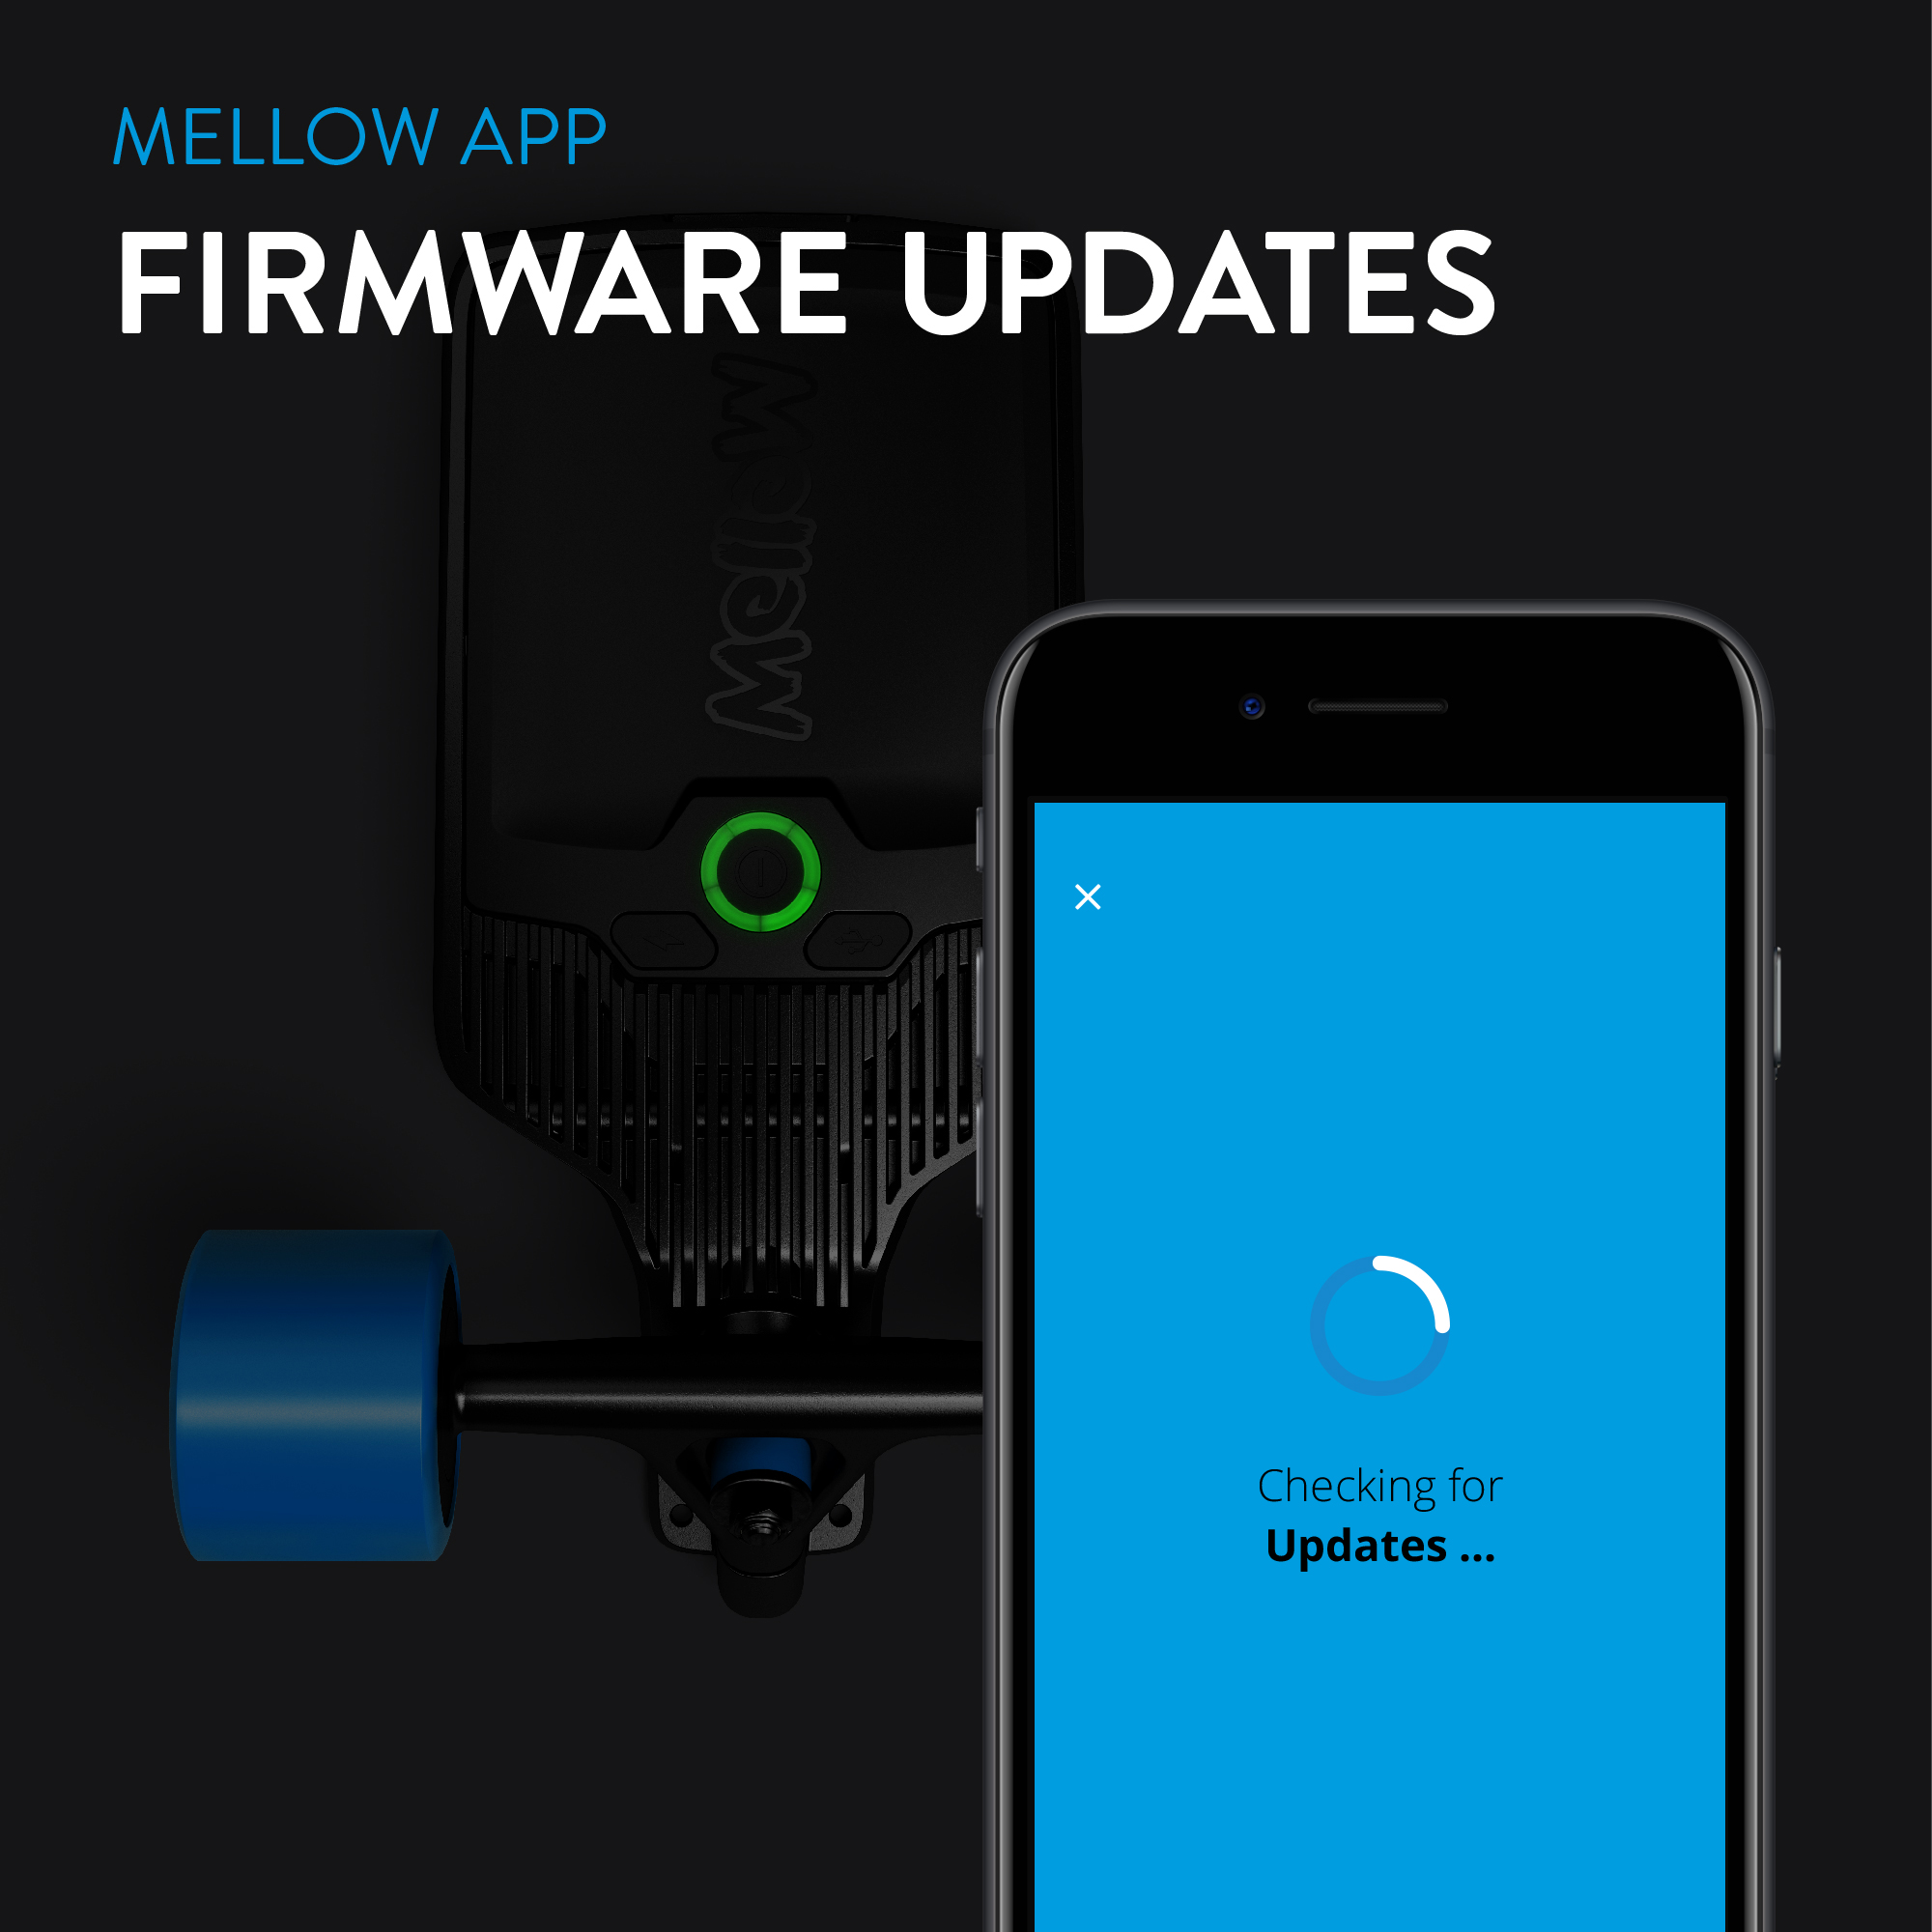 mellow-electric-boards-firmeware-update-endless-ride-4